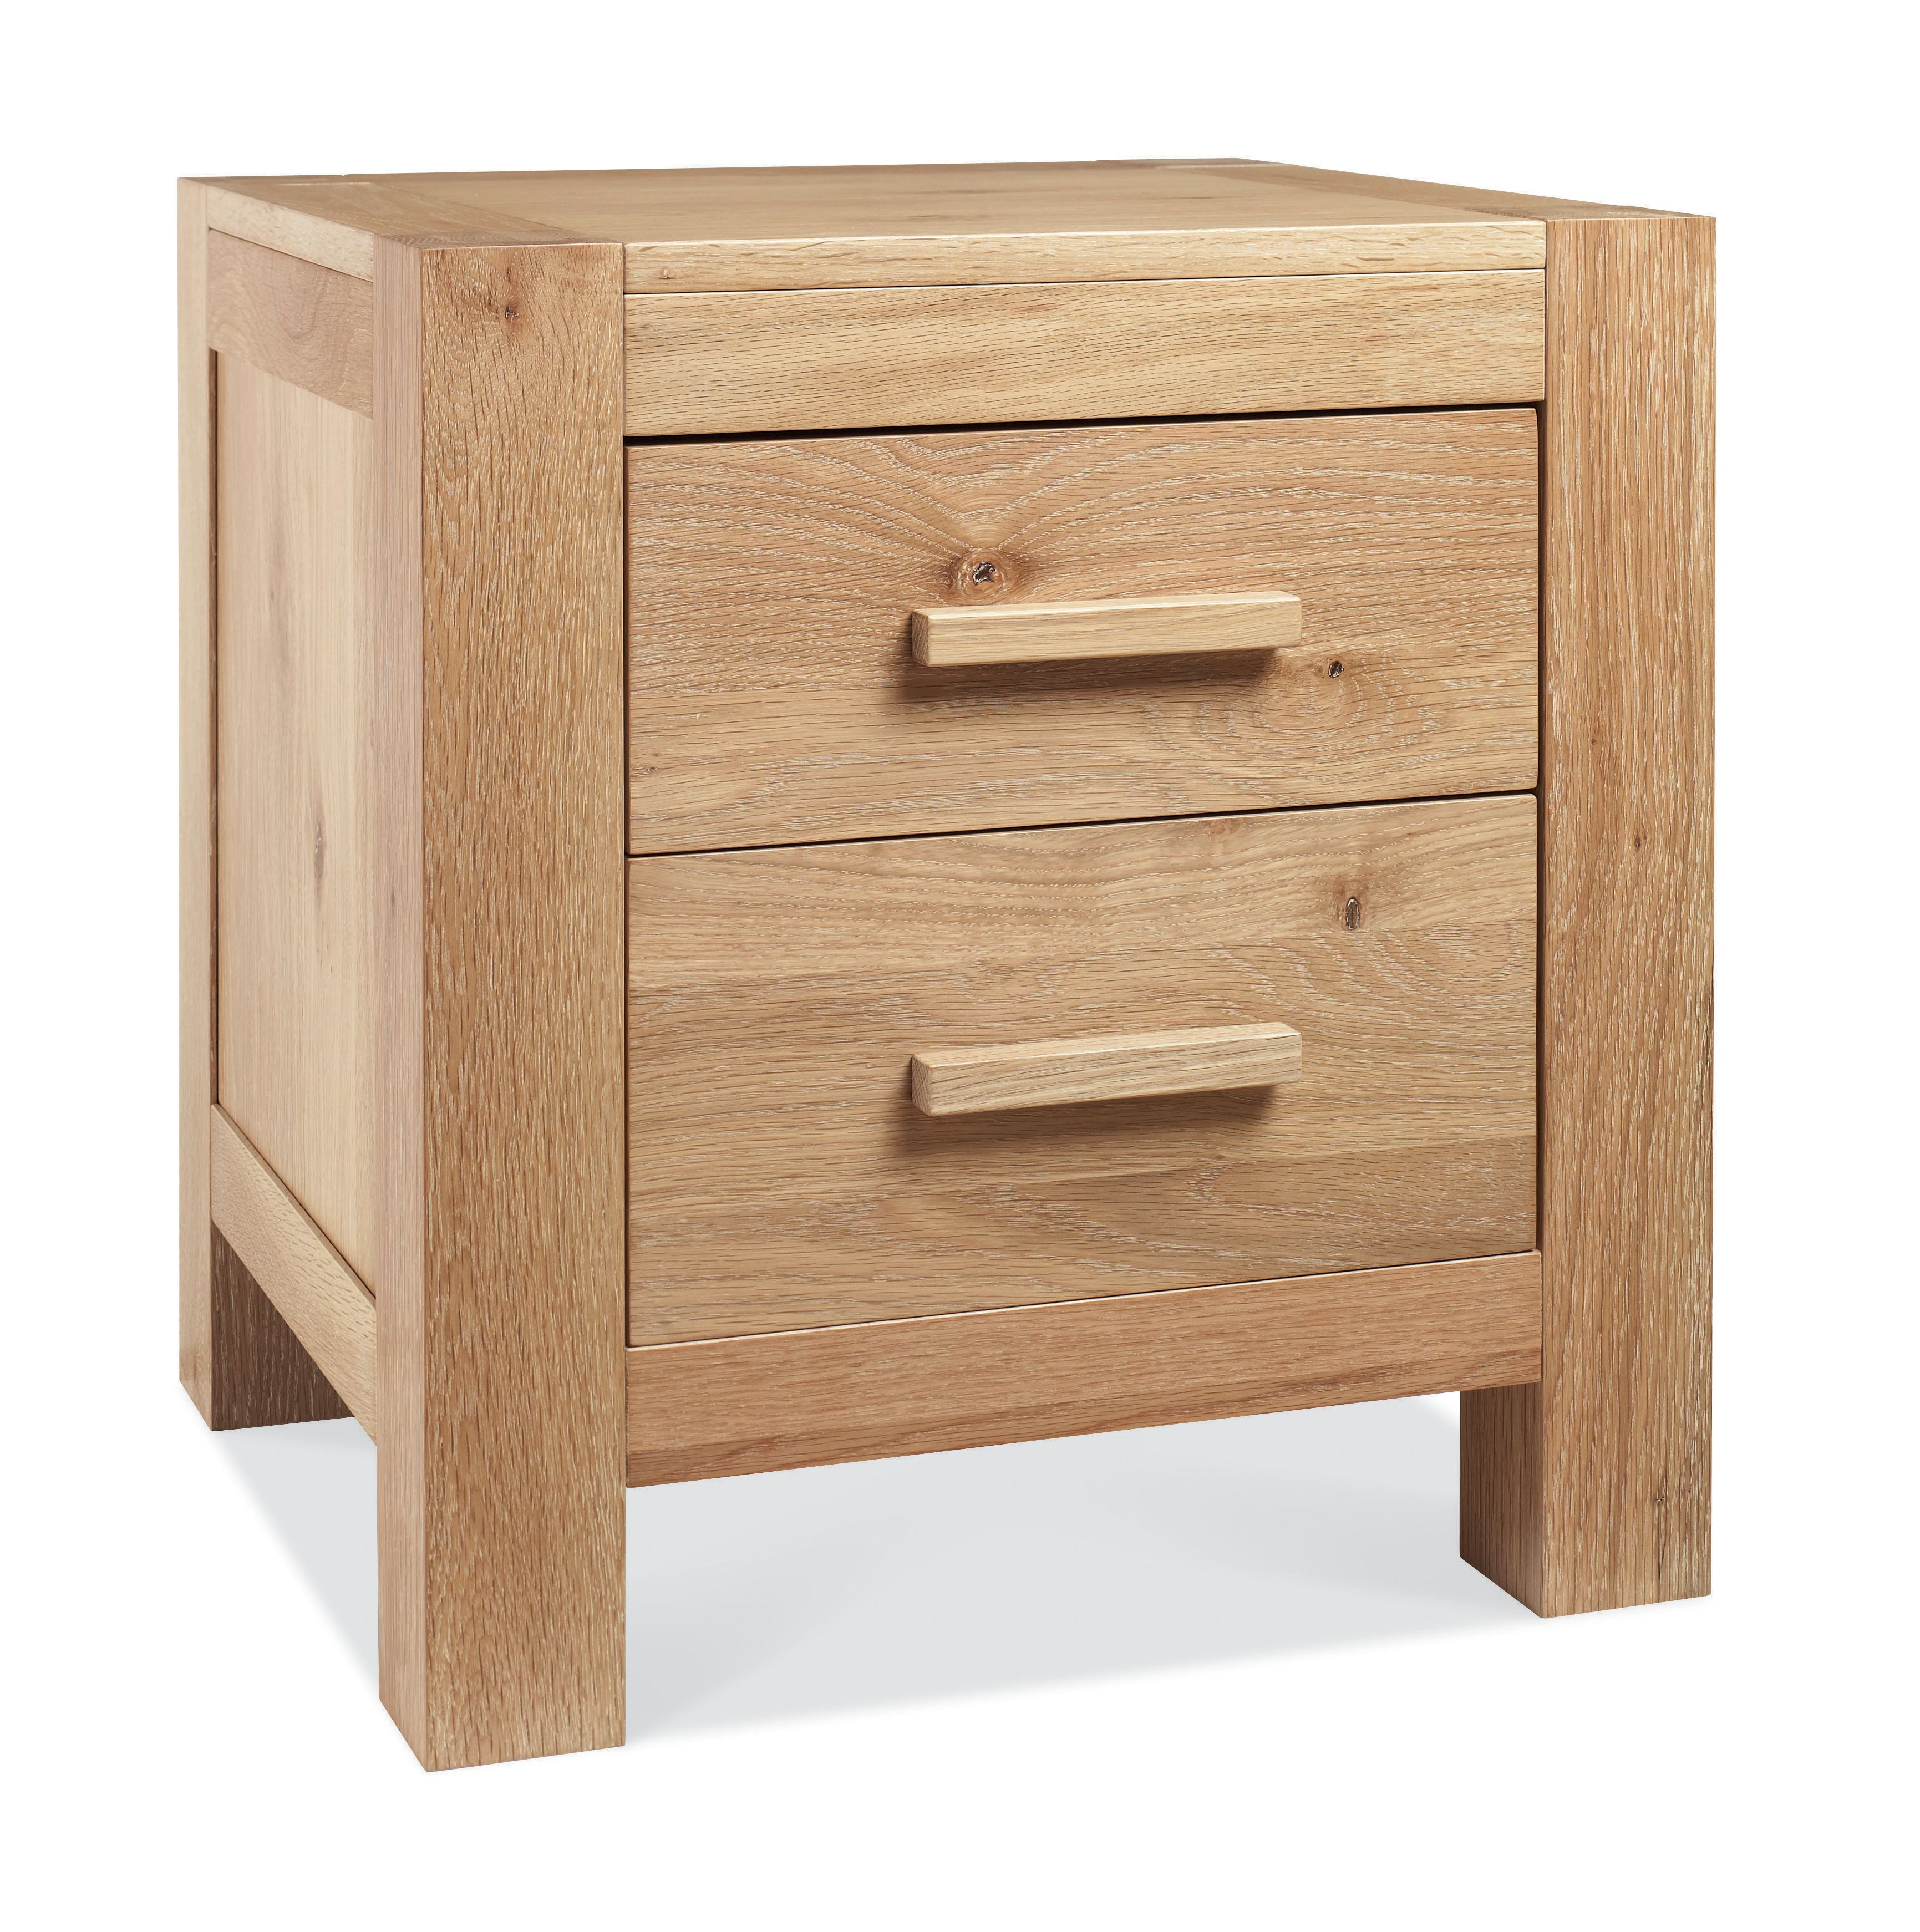 Rennes 2 drawer bedside chest